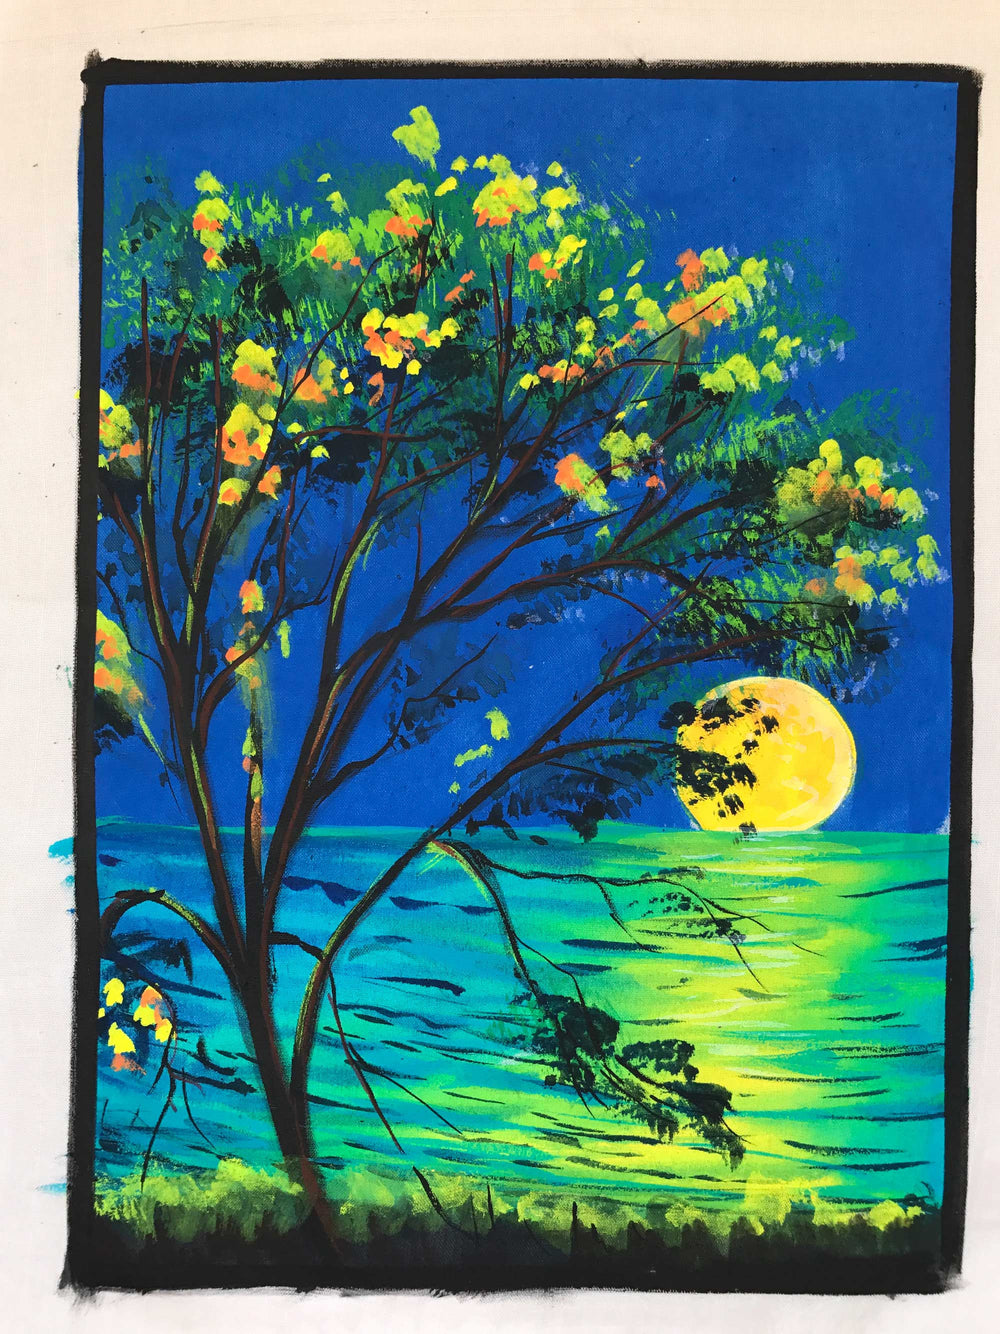 UV Glow Moonset View painting made from fluorescent colors